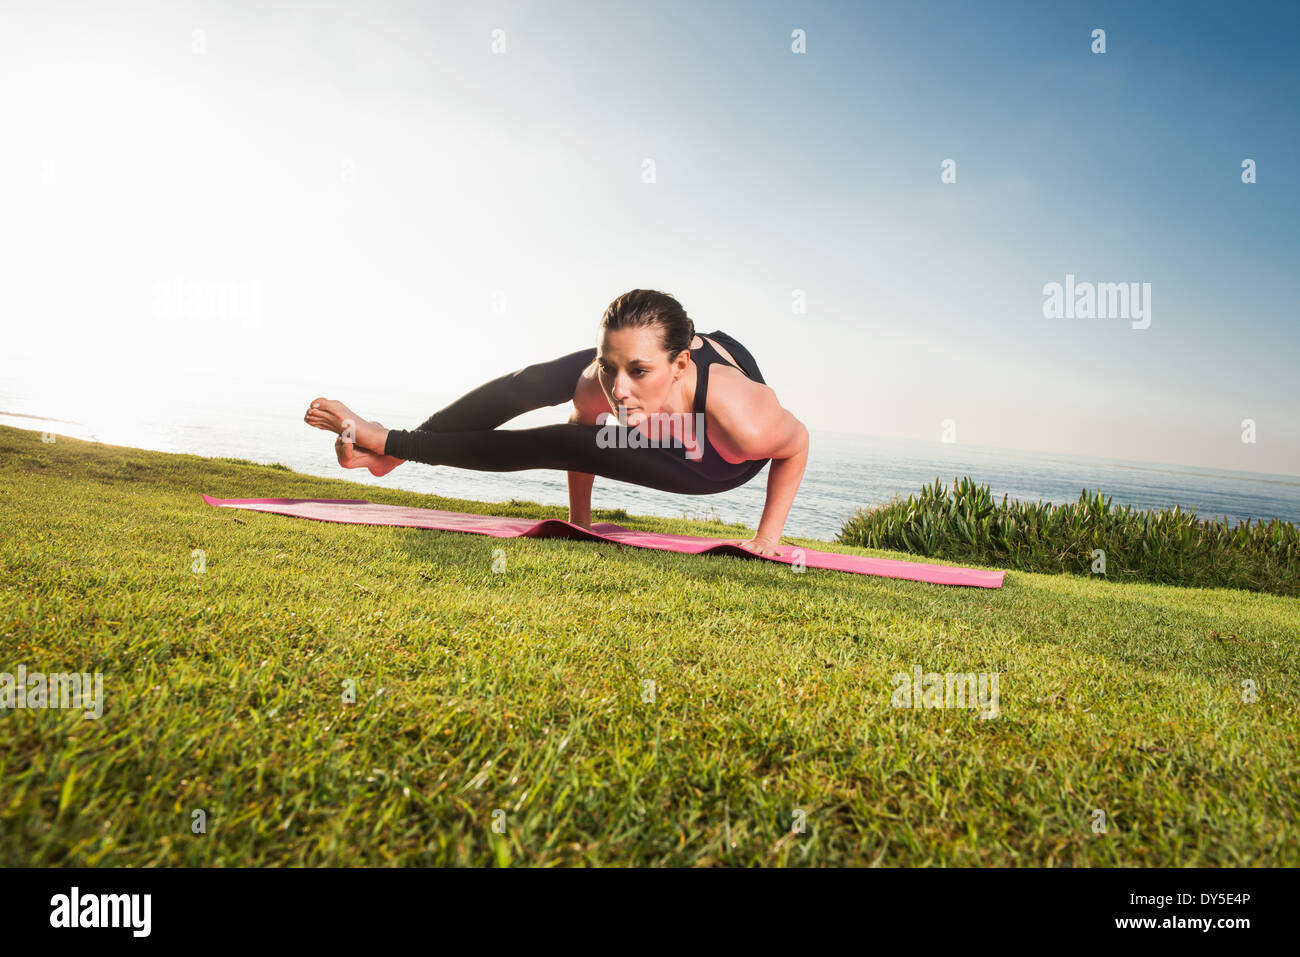 Women on cliff, in yoga position Photo Stock